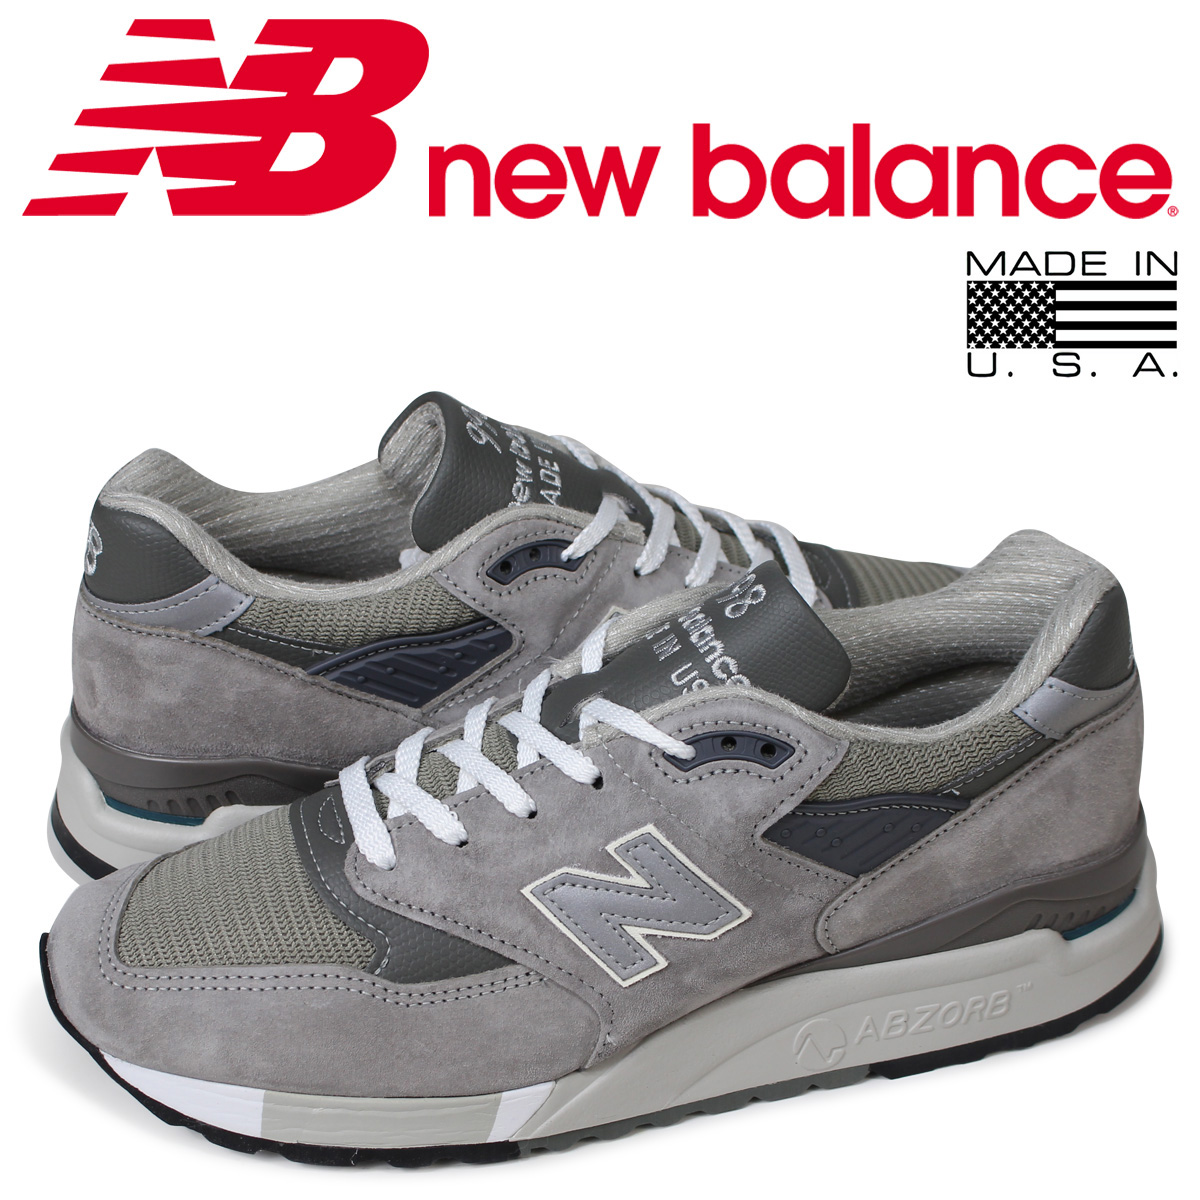 online retailer 82b2a cfc9e New Balance new balance 998 men's sneakers MADE IN USA D Wise gray M998 GY  [the load planned additional arrival in reservation product 9/13 ...